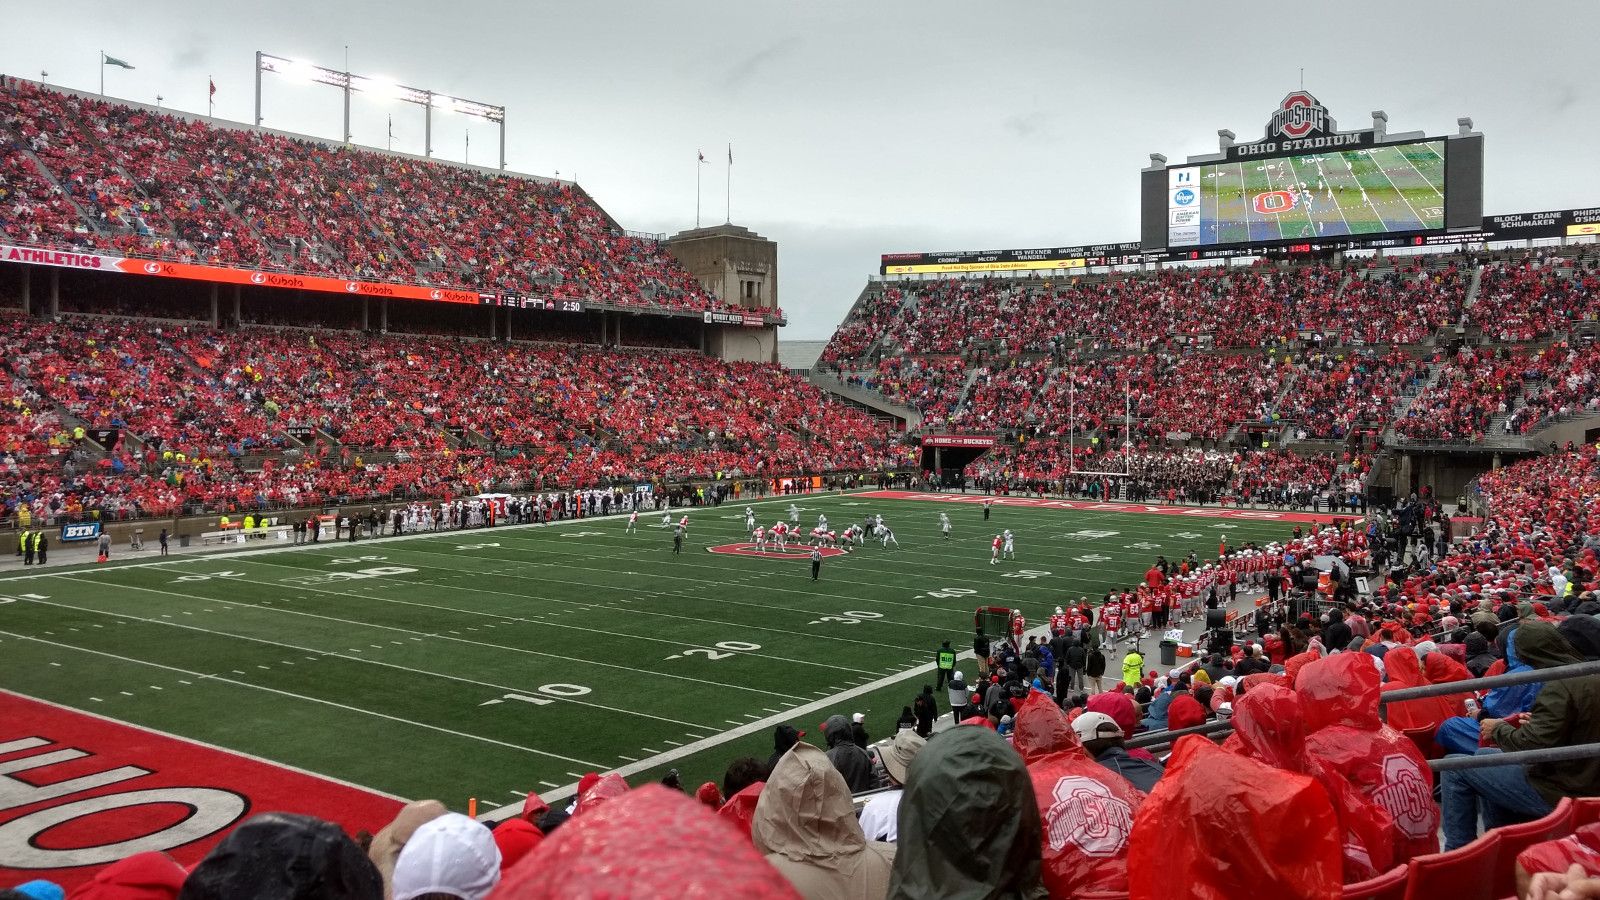 Football game in Ohio Stadium, the Buckeyes vs the Rutgers